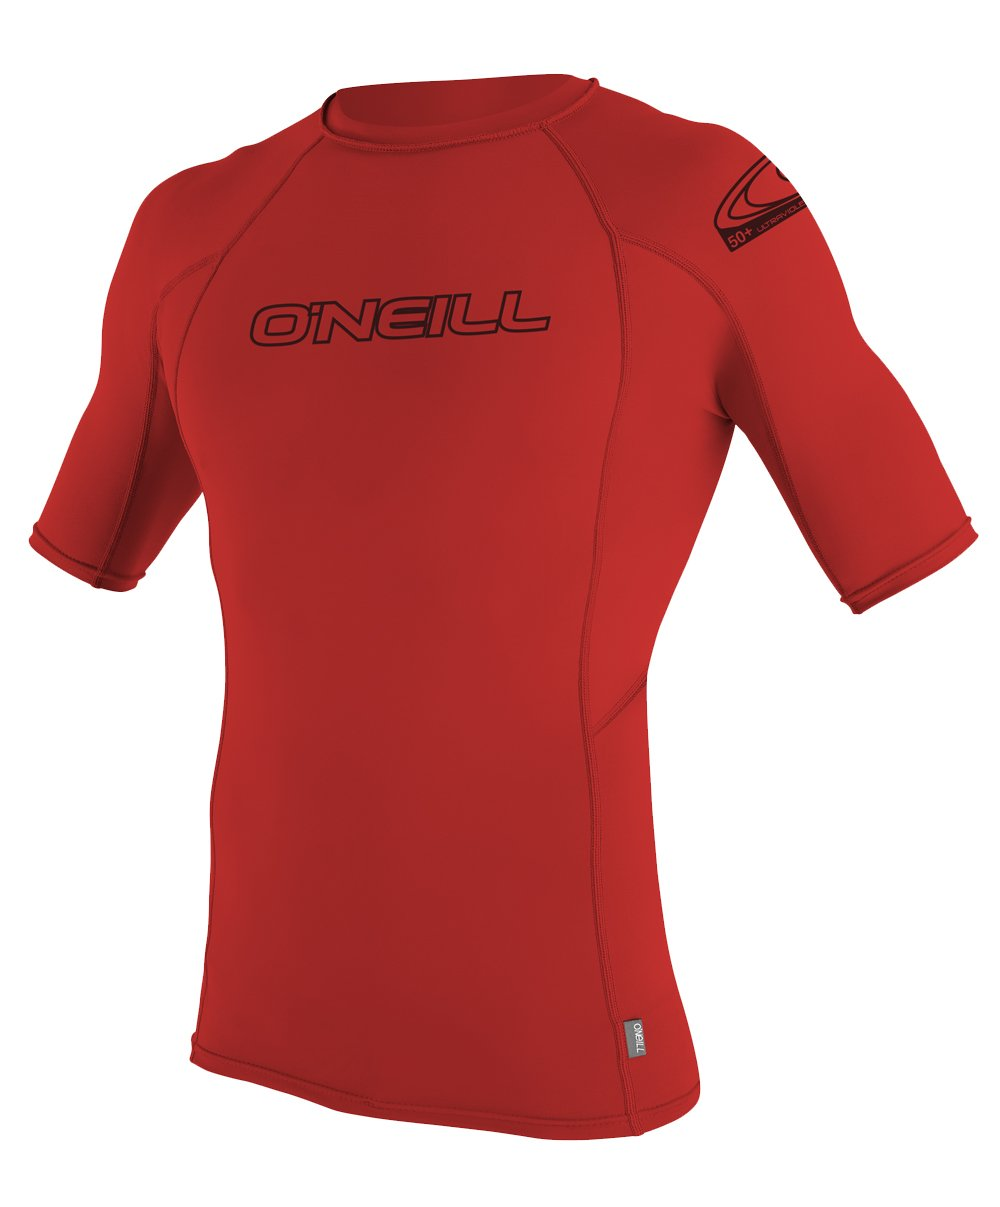 O'Neill UV Sun Protection Youth Basic Skins, Red, 14